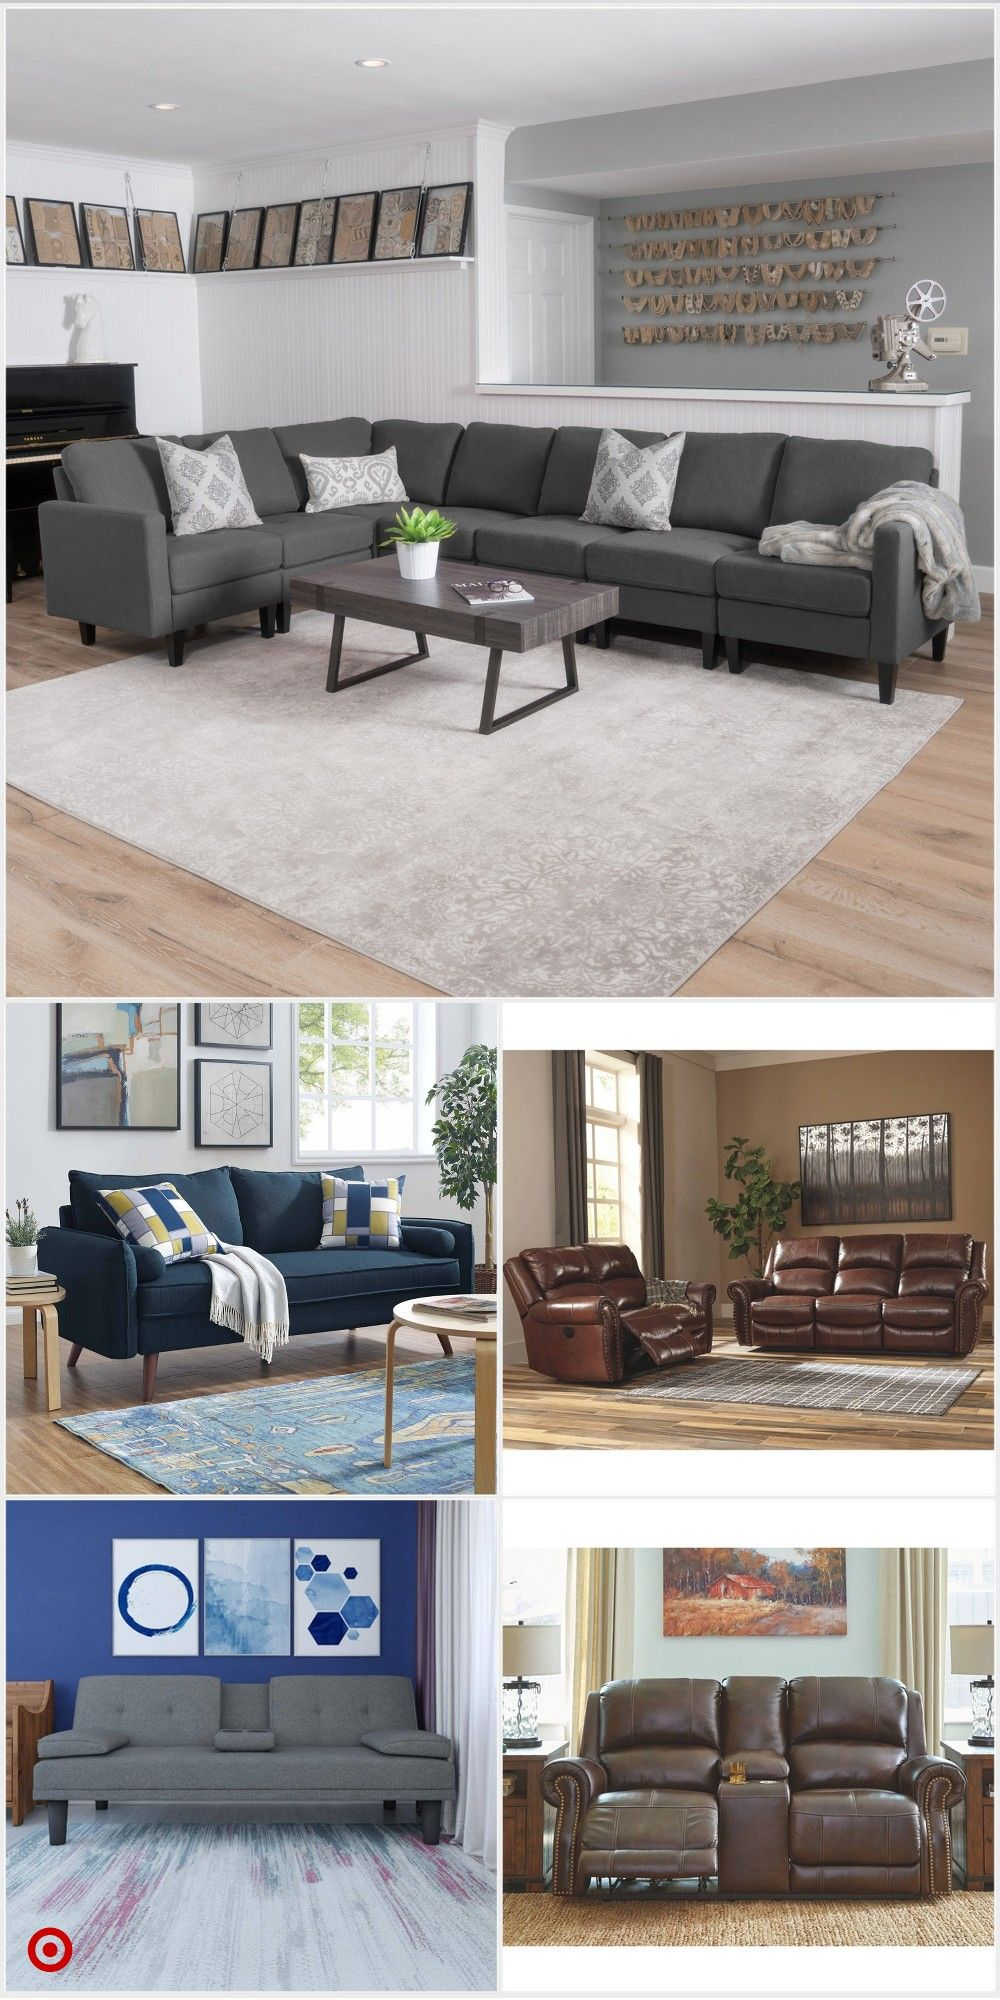 Shop Target For Sectional Sofas You Will Love At Great Low Prices Free Shipping On Orders Of 3 Living Room Decor Cozy Living Room Sets Living Room Table Sets